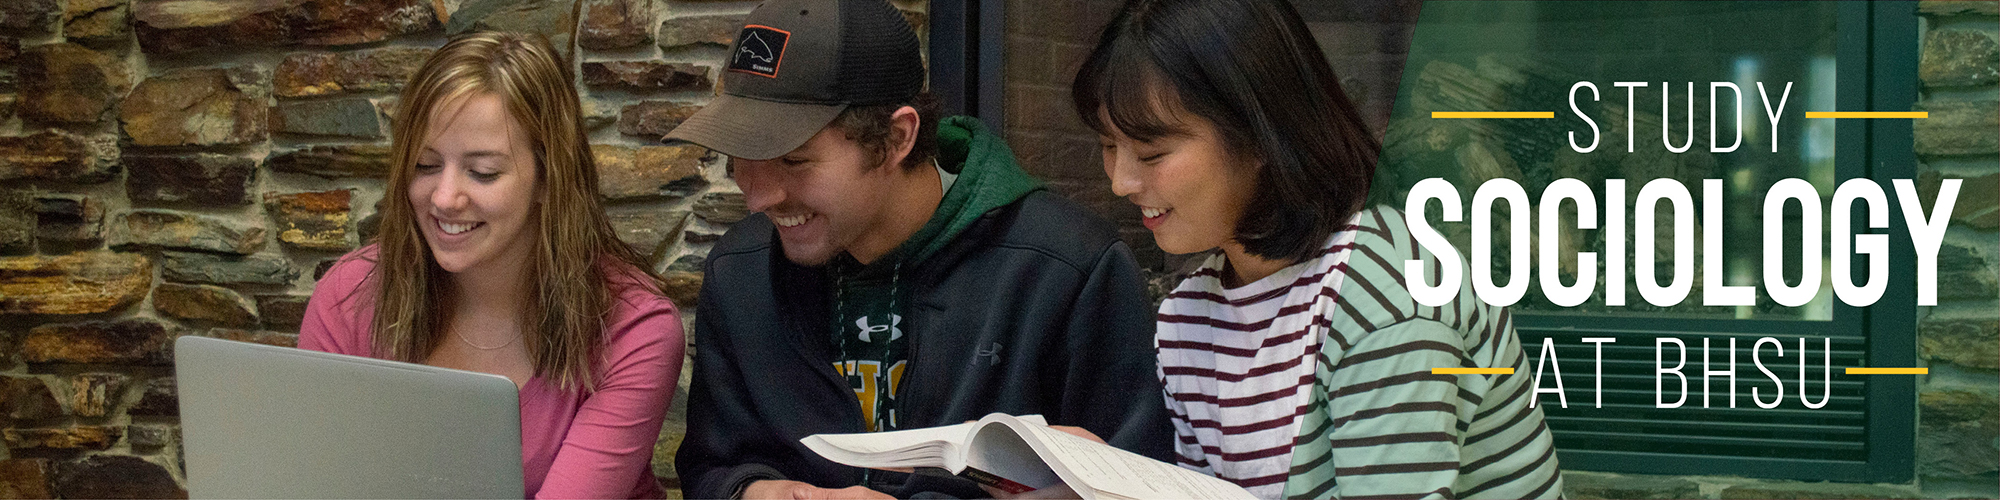 Study Sociology at BHSU